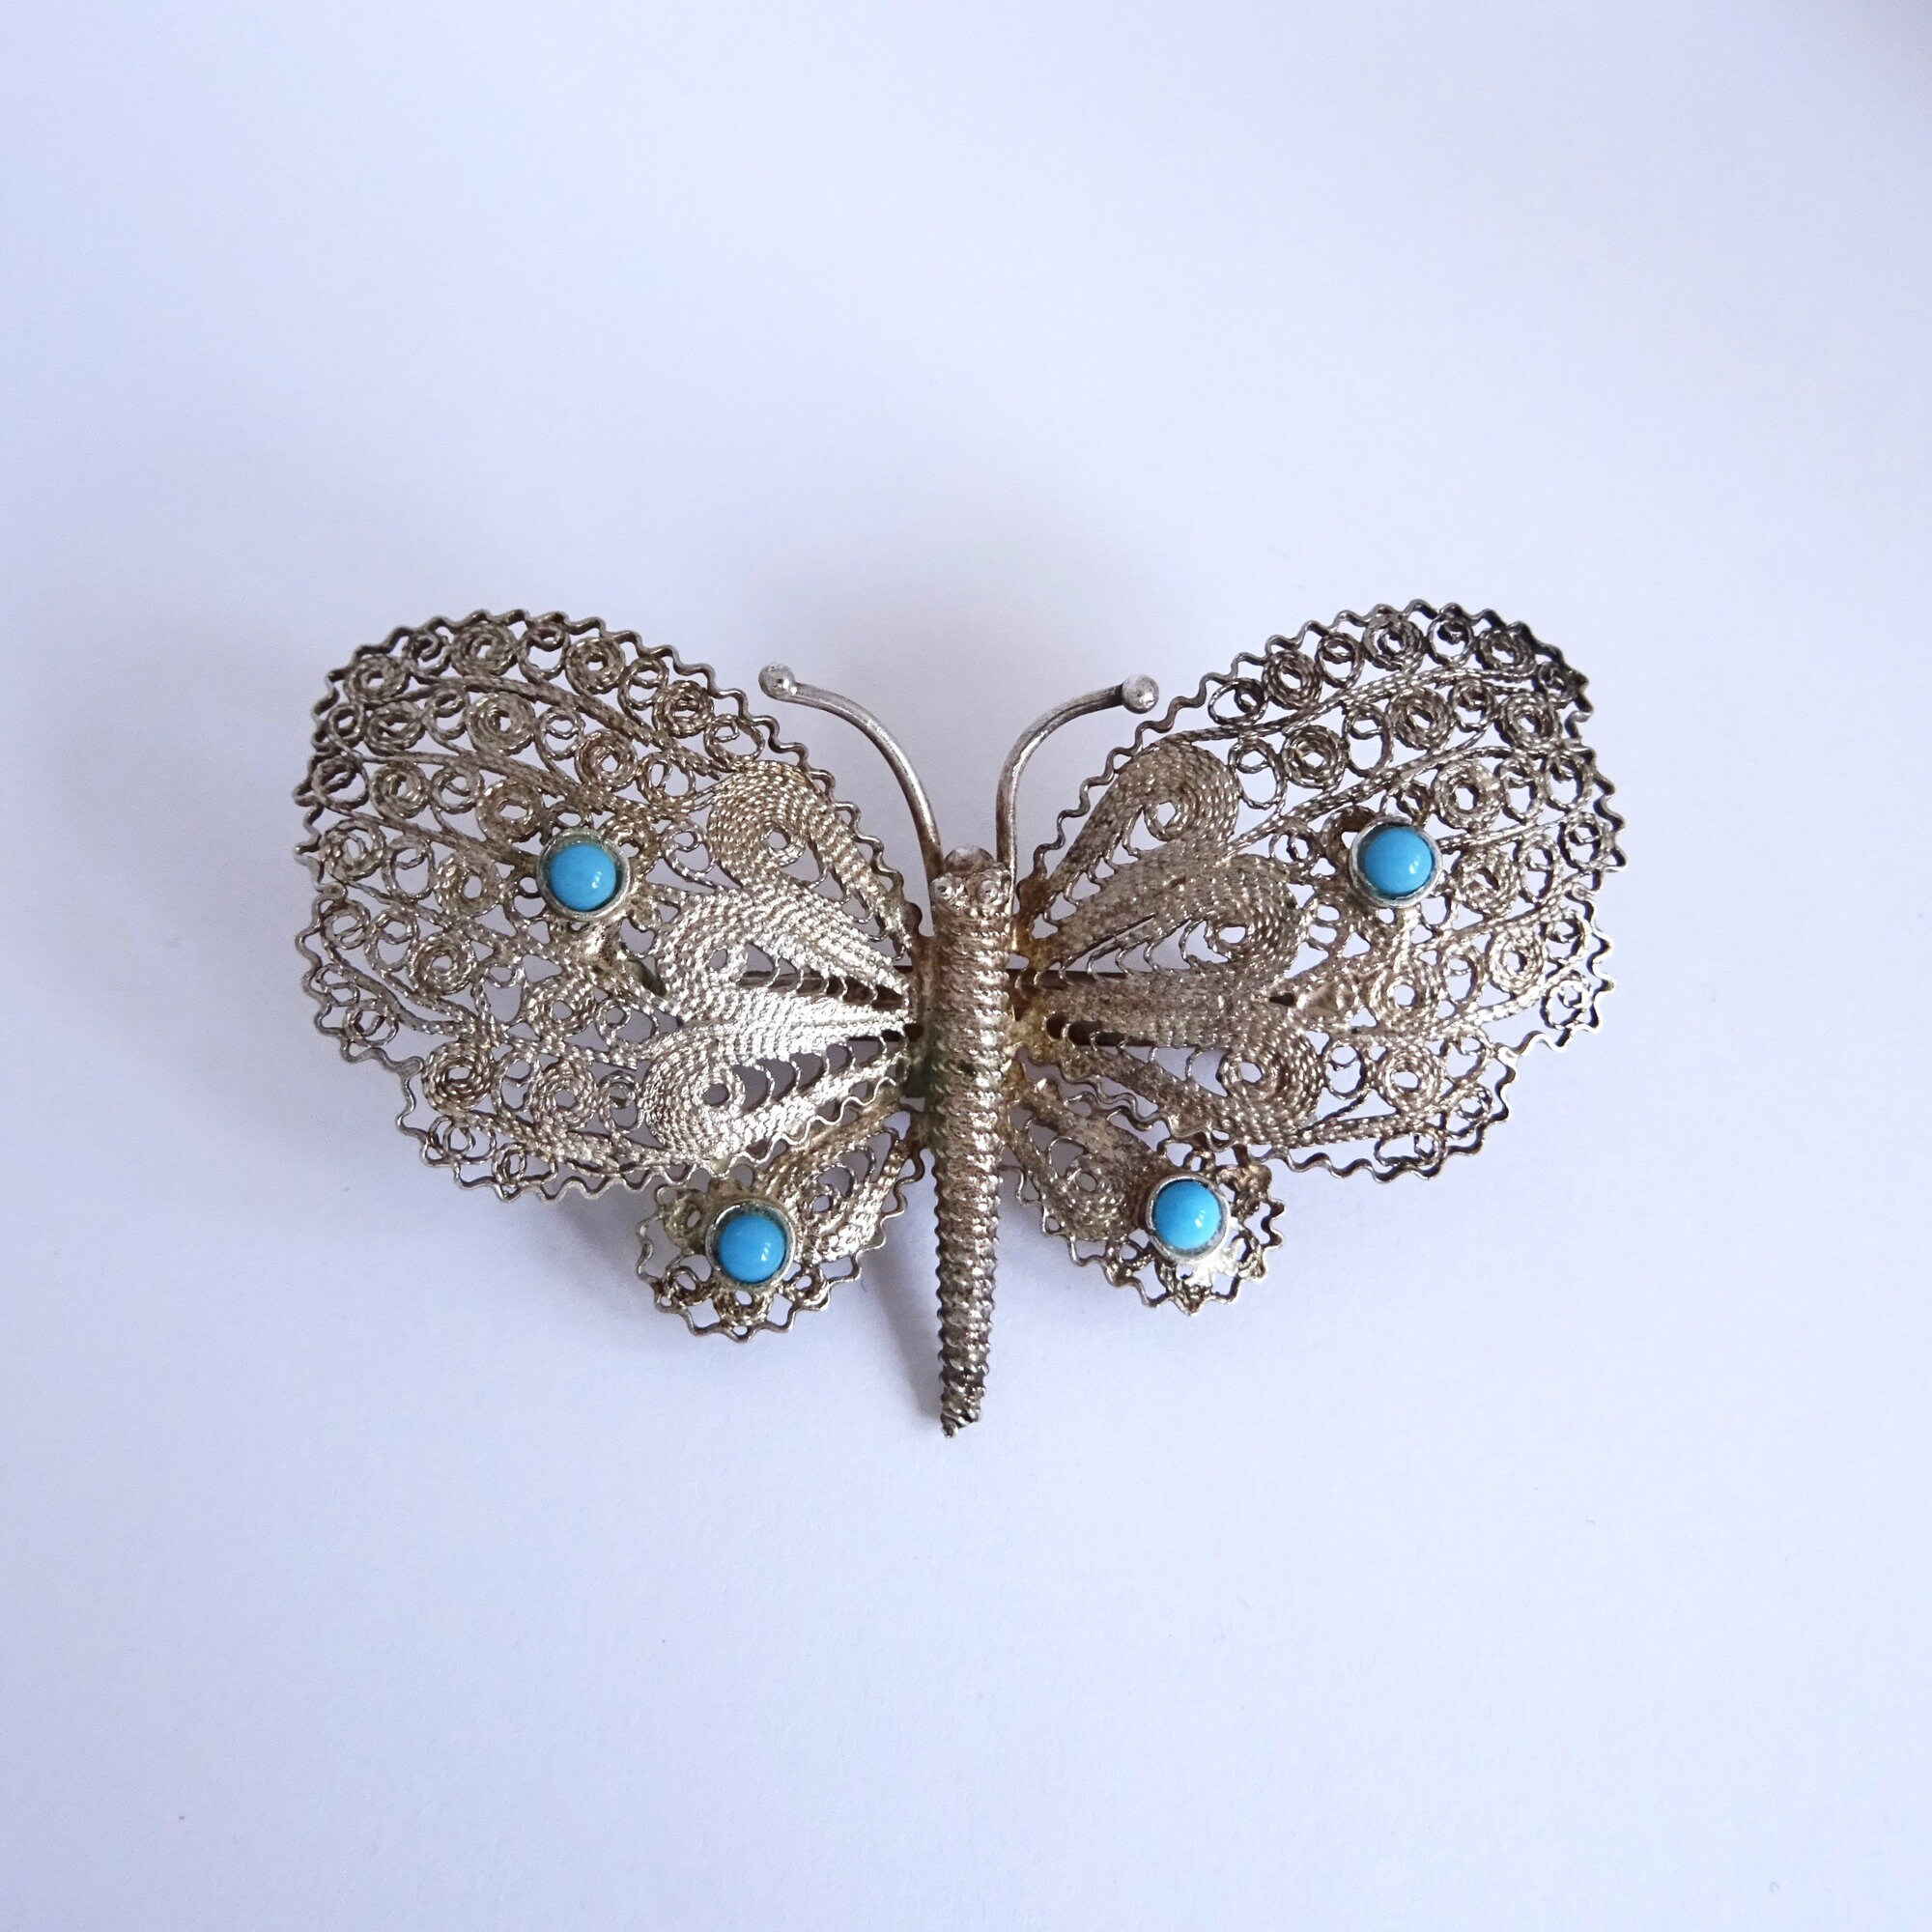 Blue Glass Mexican Silver Vintage Silver Filigree Brooch